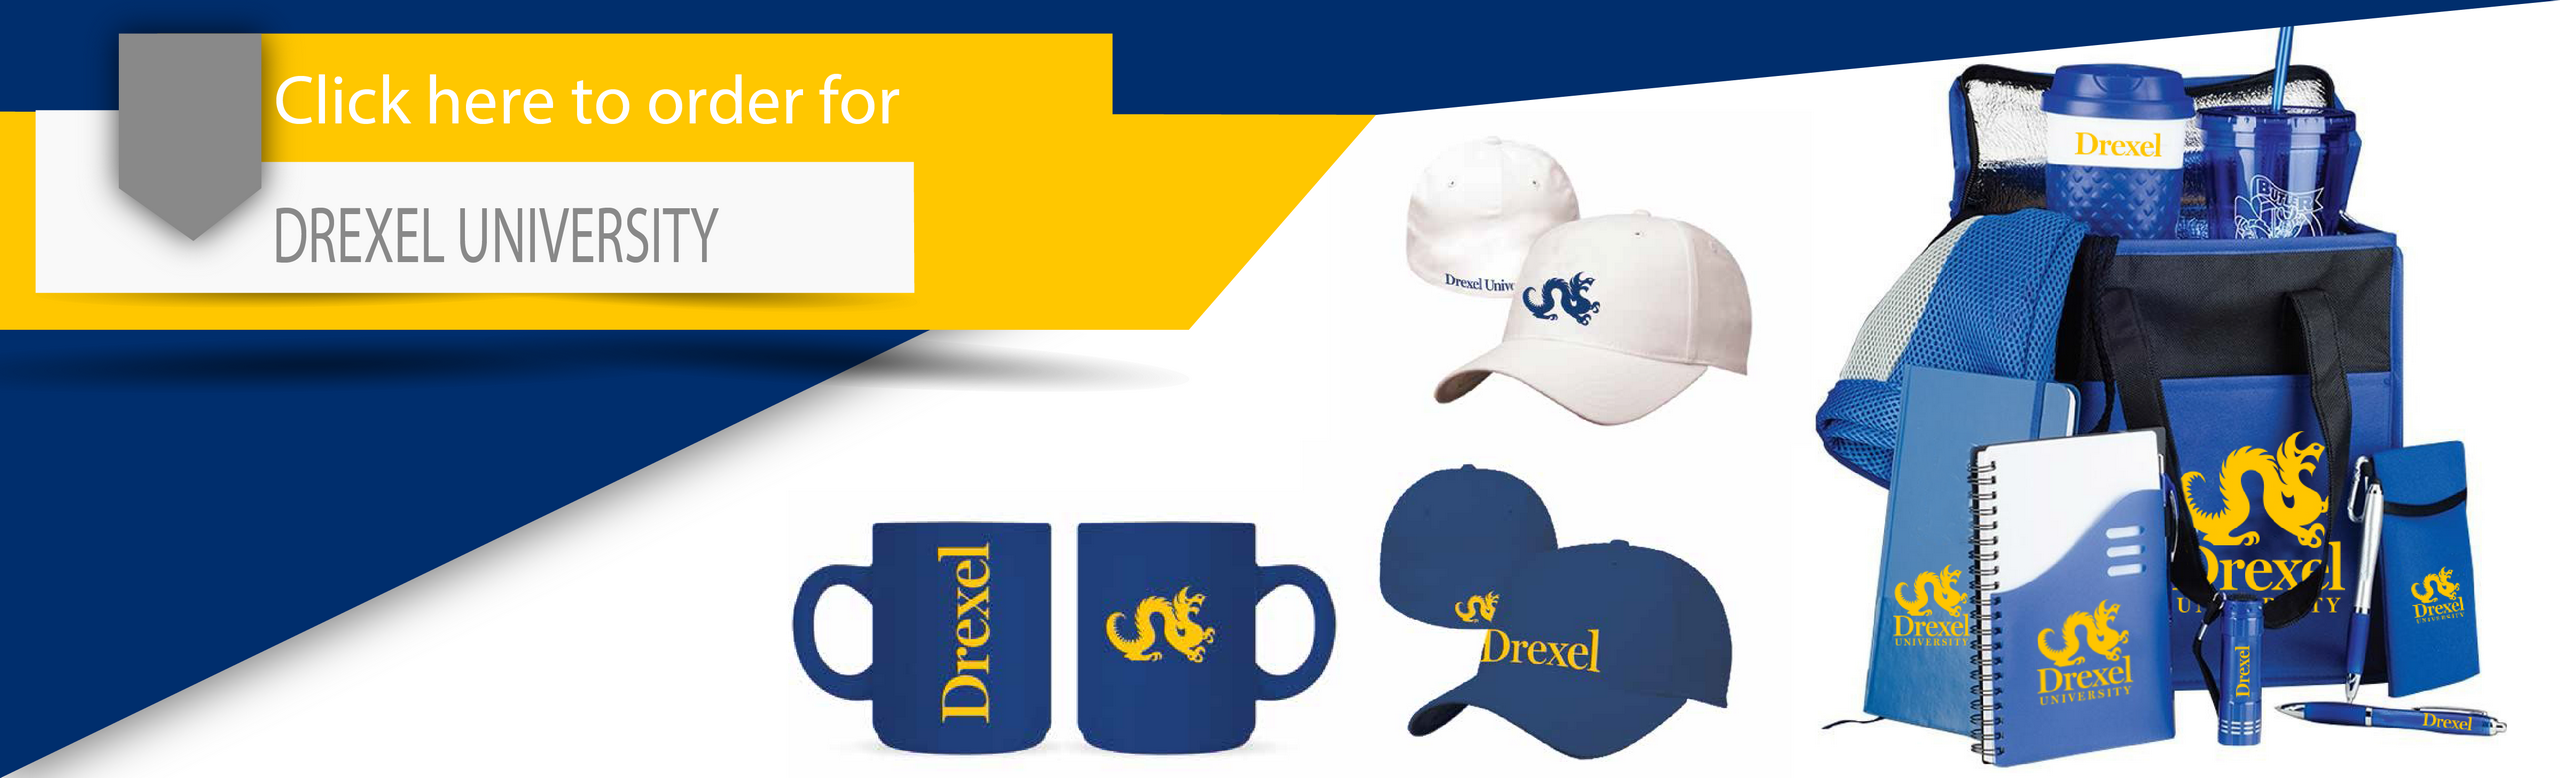 Drexel University Promotional Products